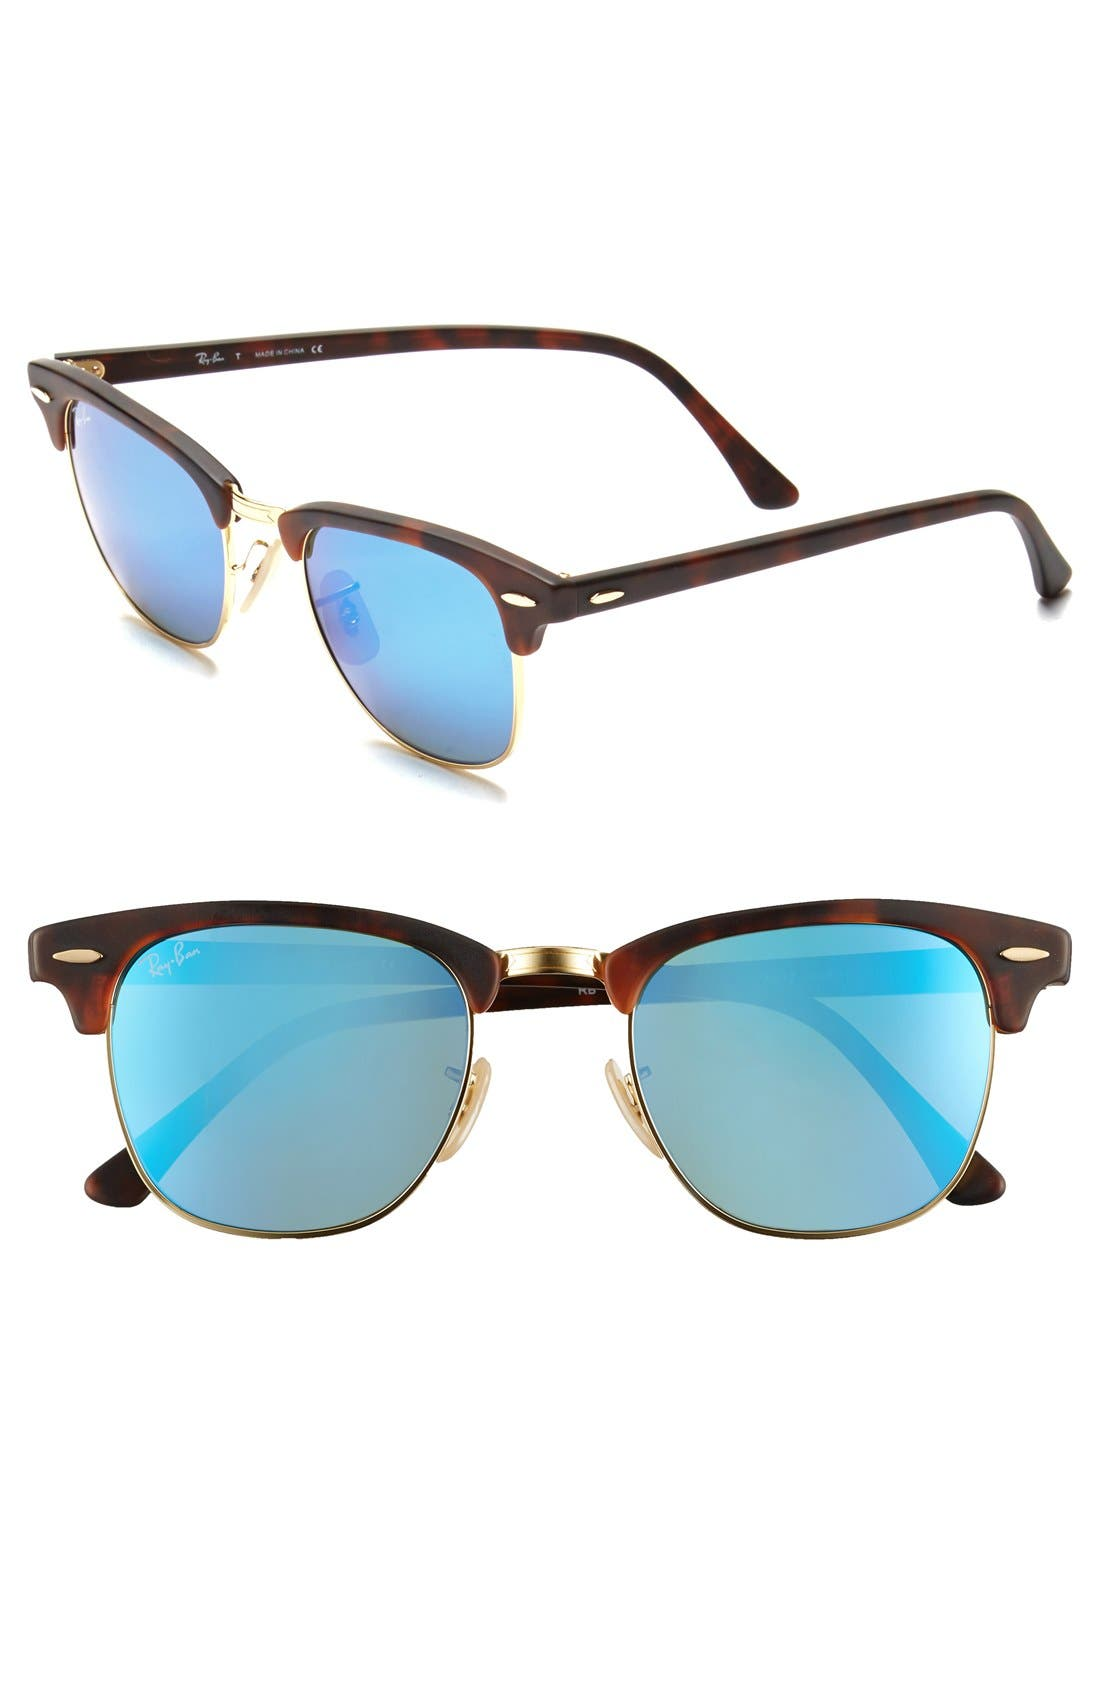 Ray-Ban Flash Clubmaster 51Mm Sunglasses - Tortoise/ Blue Mirror